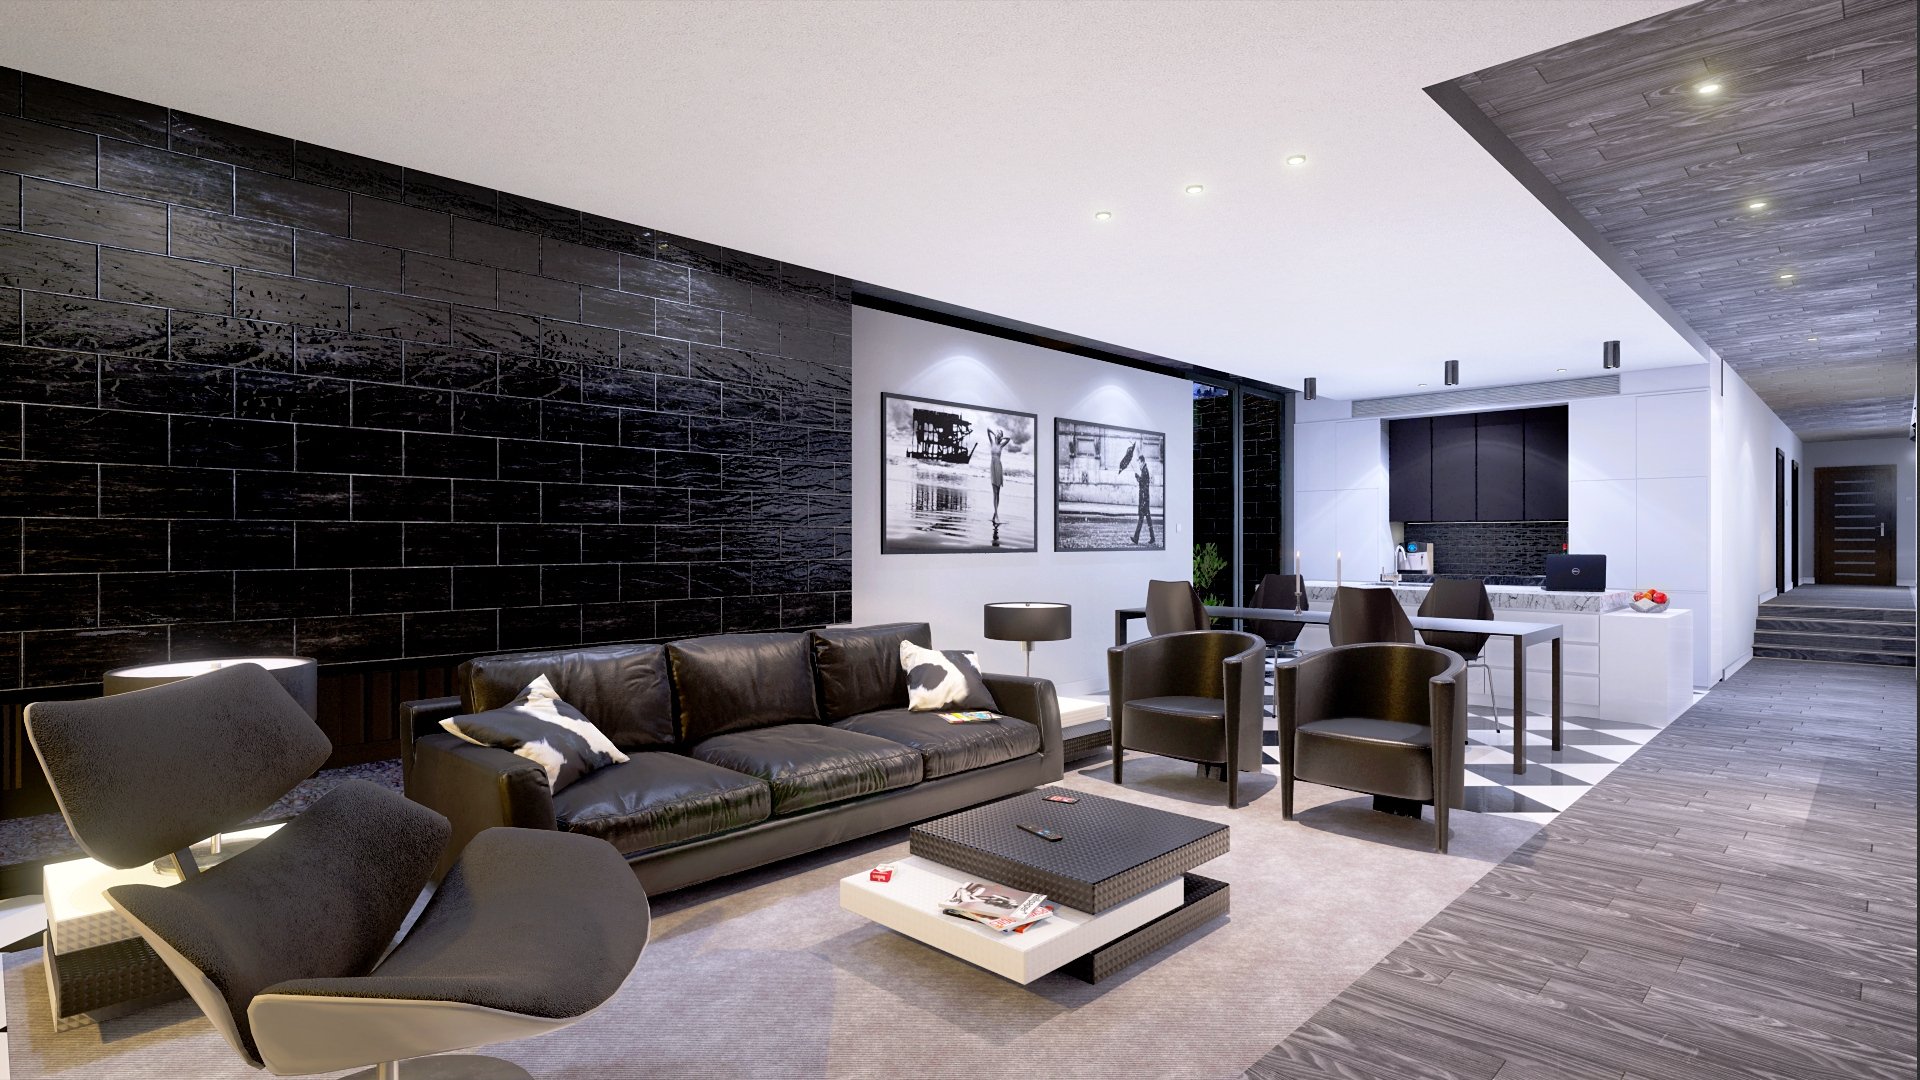 Here Is Another Photorealistic Apartment Created with Unreal